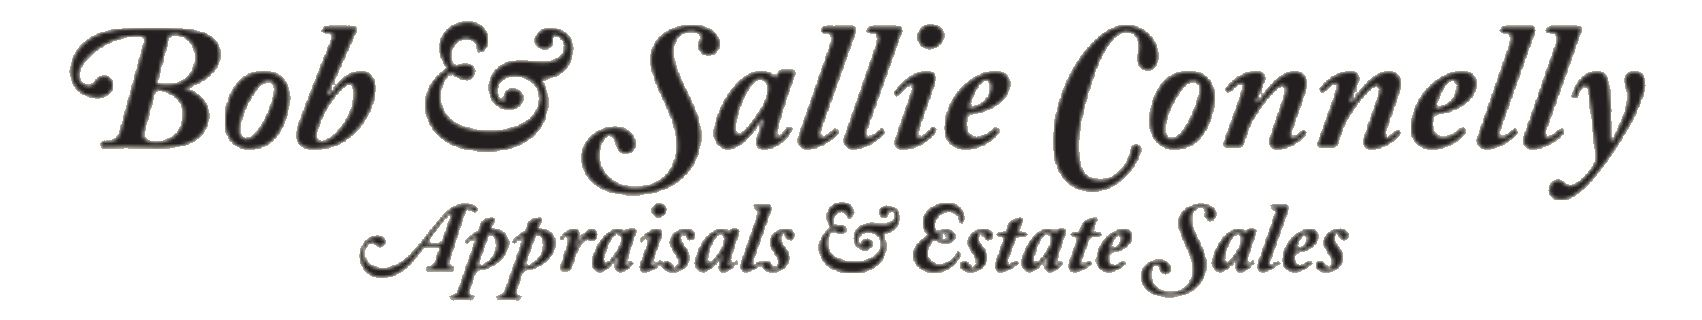 Bob & Sally Connelly Appraisals and Estate Sales